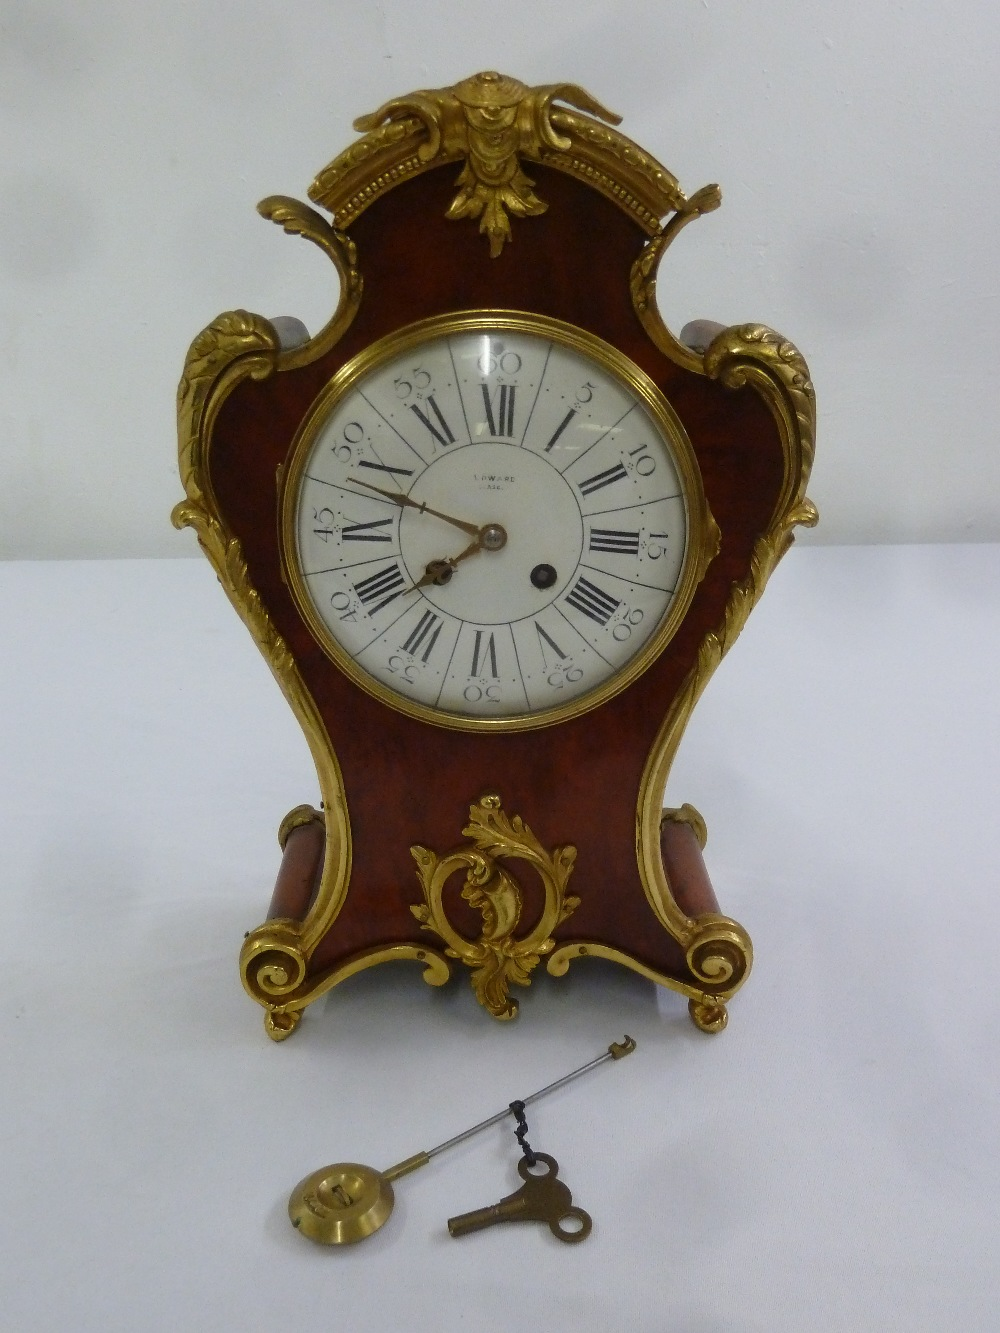 Lot 400 - Edwards of Glasgow tortoiseshell and gilded metal mantle clock in the French style white enamel